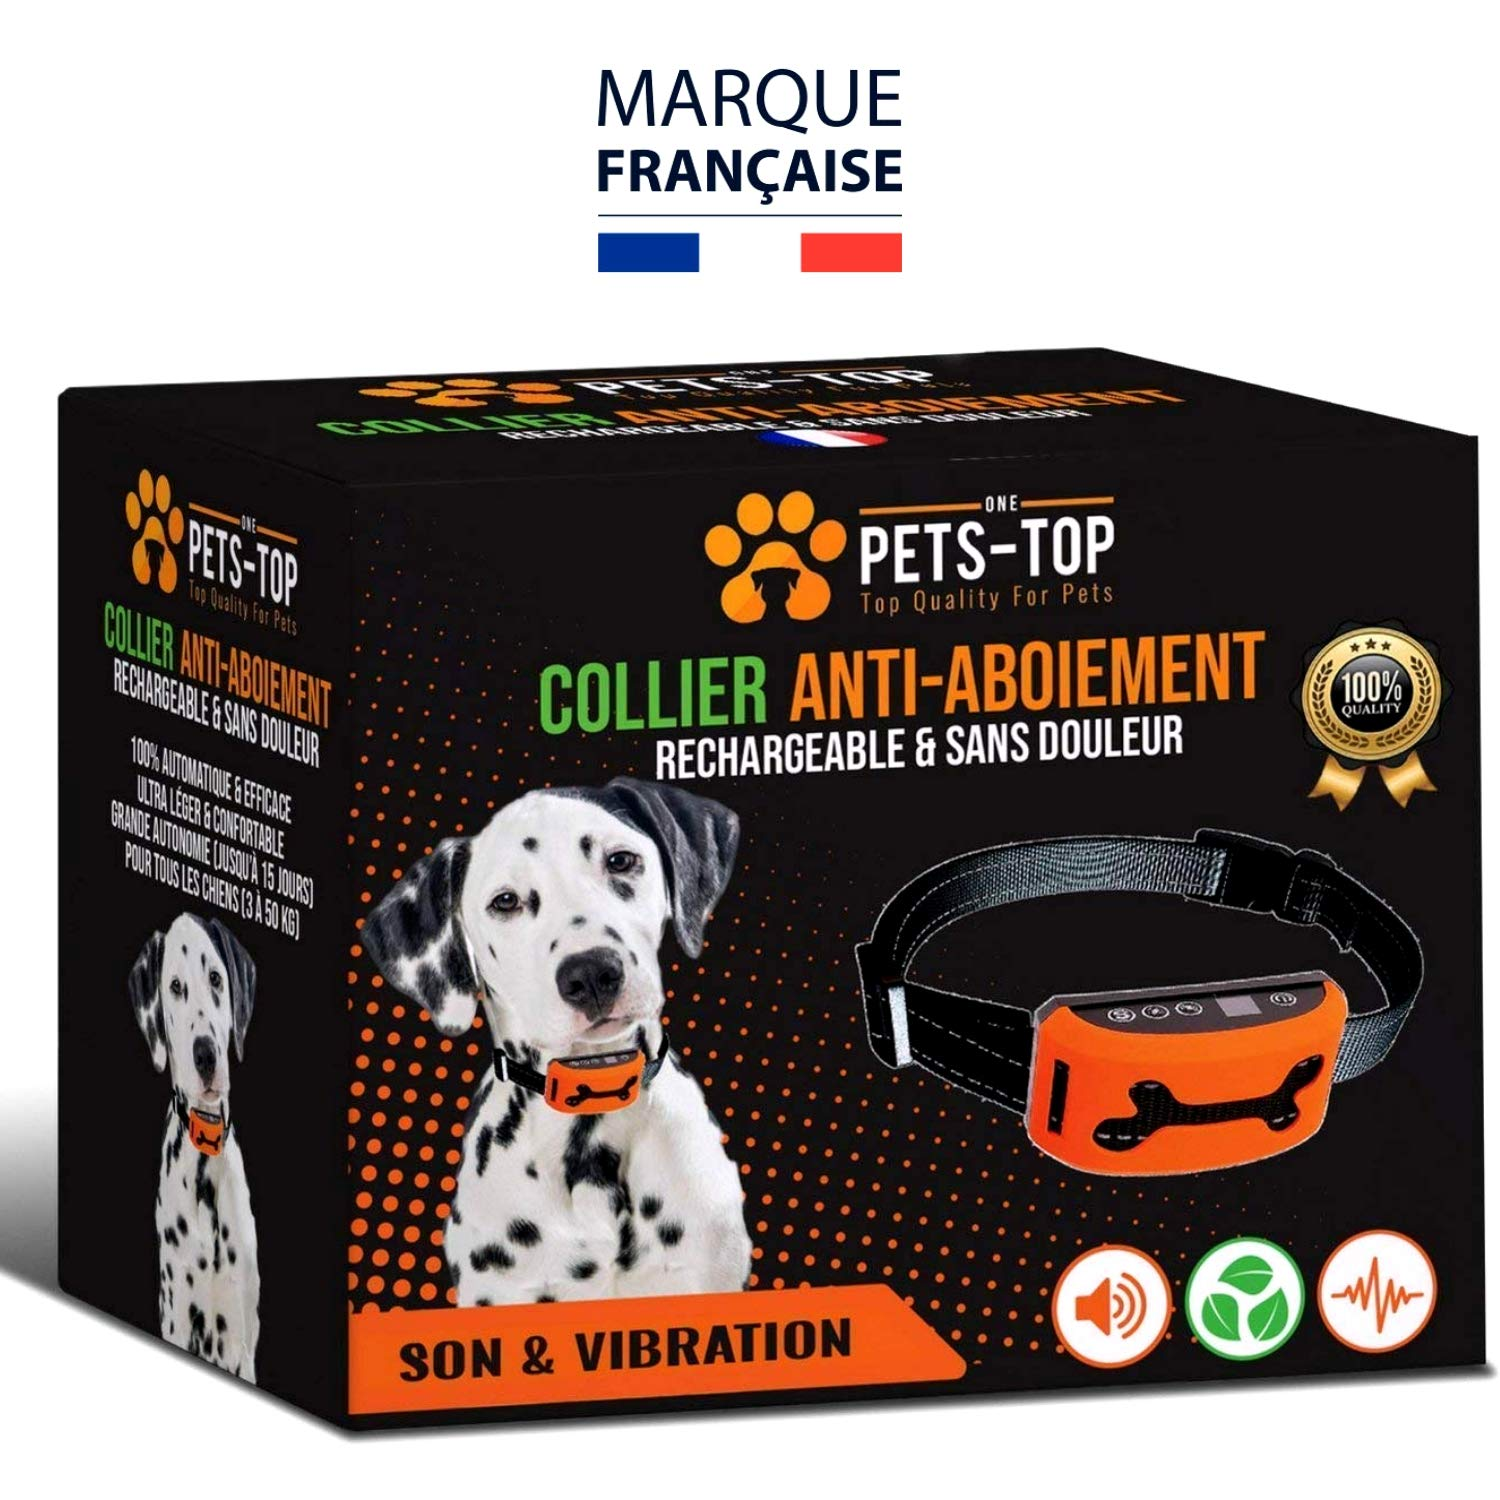 One PETS-TOP Anti-Bark Dog Training Vibration Collar Waterproof 7 Levels Adjustable Strap All Breeds 3-50 Kg French Brand Ebook Offered Dressage Dissuasive System Compatible Crying